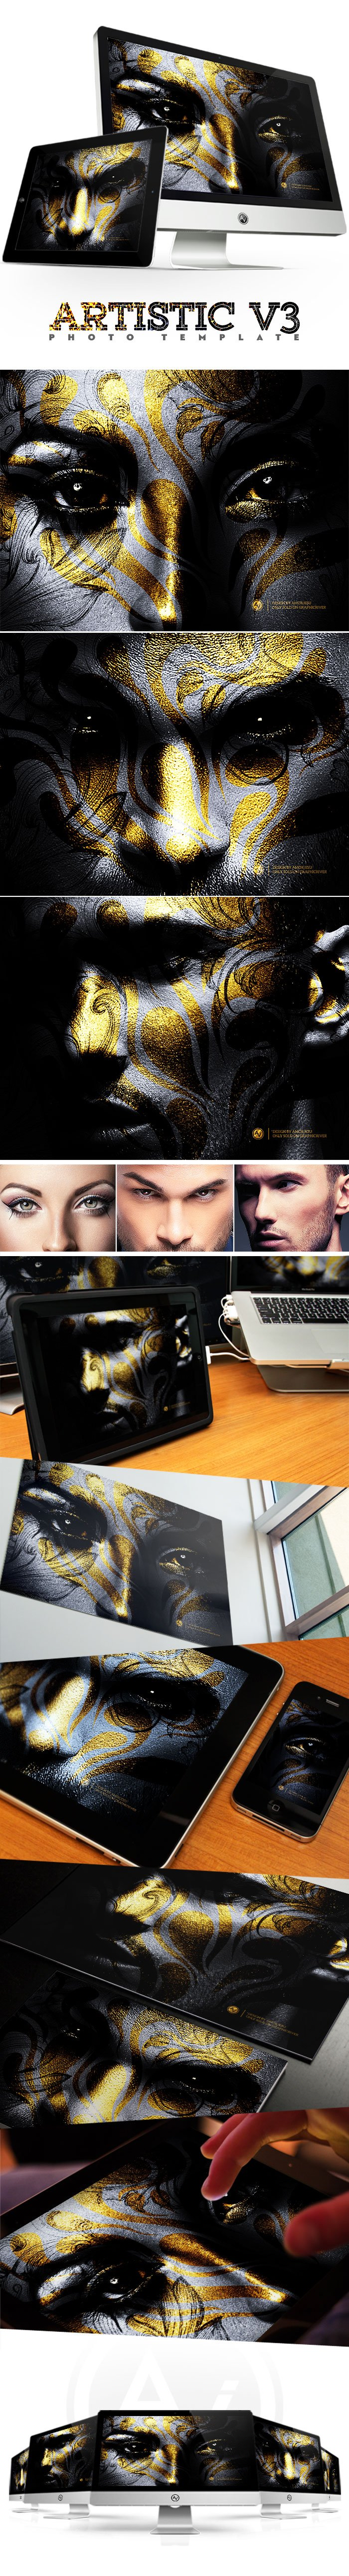 Photoshop Actions & Templates: Artistic Photo FX Bundle - preview artistic photo template v3 design by amorjesu